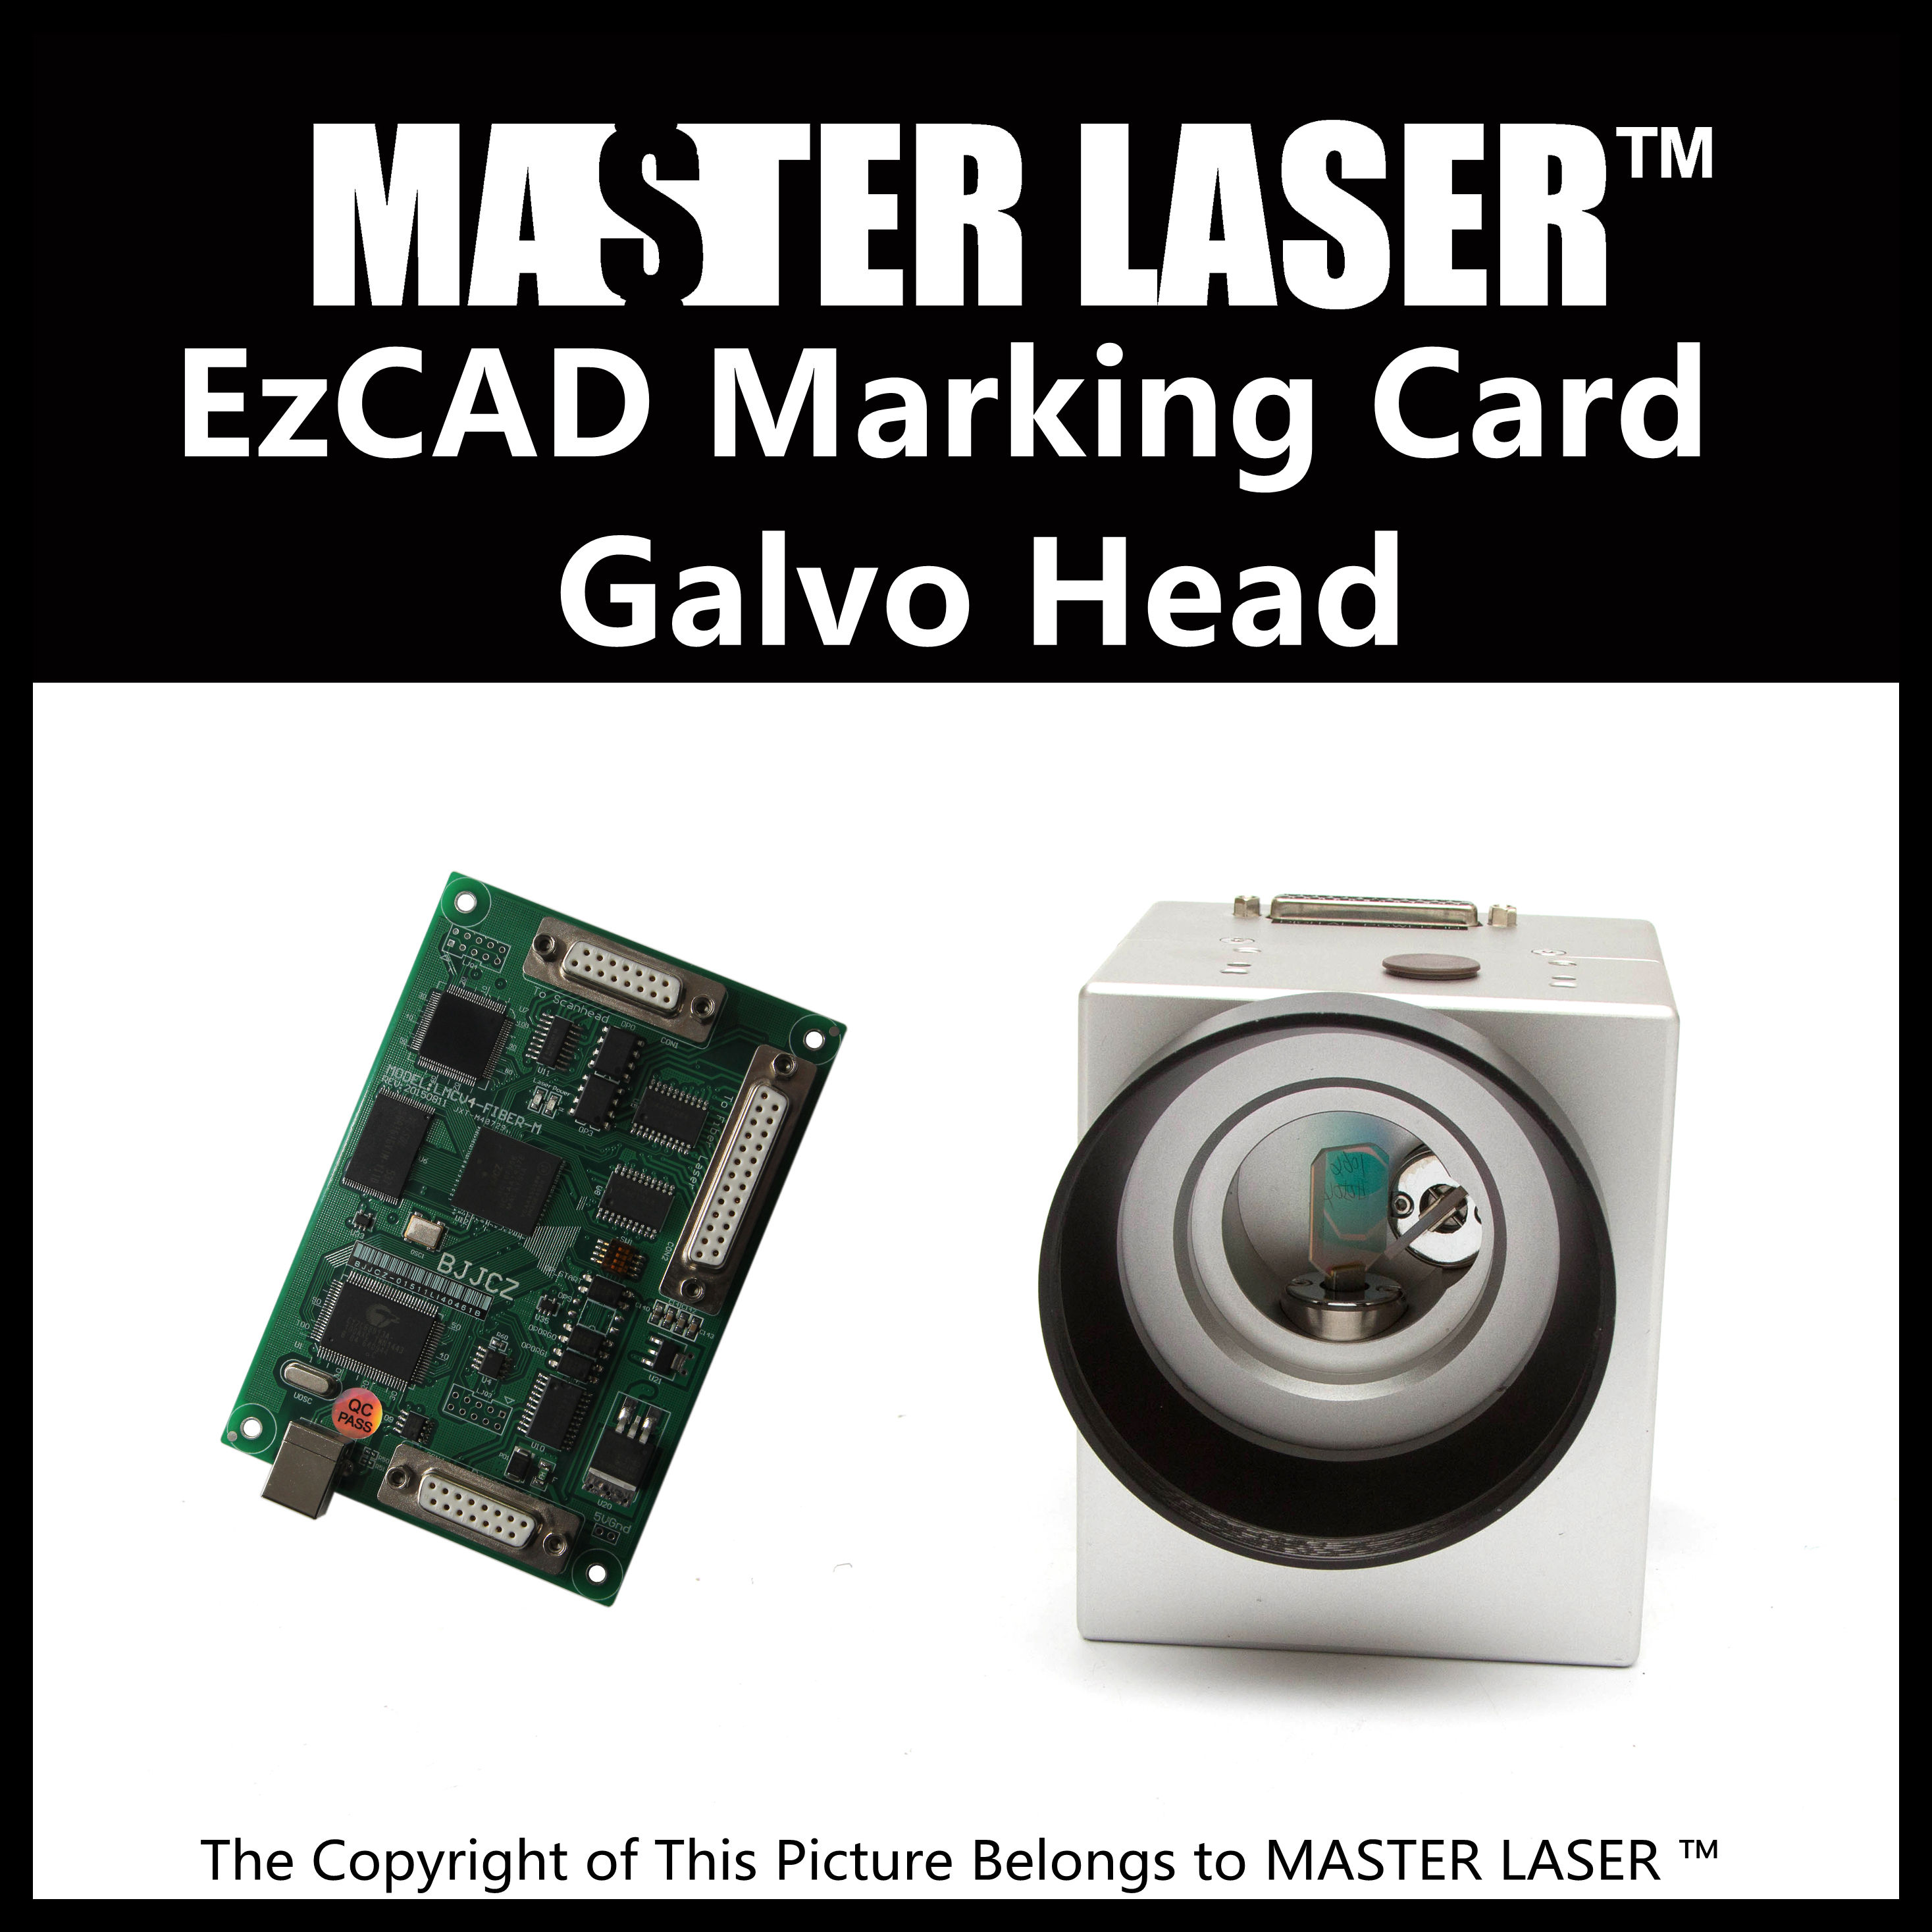 Low Price Good Quality Galvo Scanning System 1064nm 10mm Input Fiber Laser Galvanometer and Original BJJCZ EzCAD Marking Card high quality southern laser cast line instrument marking device 4lines ml313 the laser level